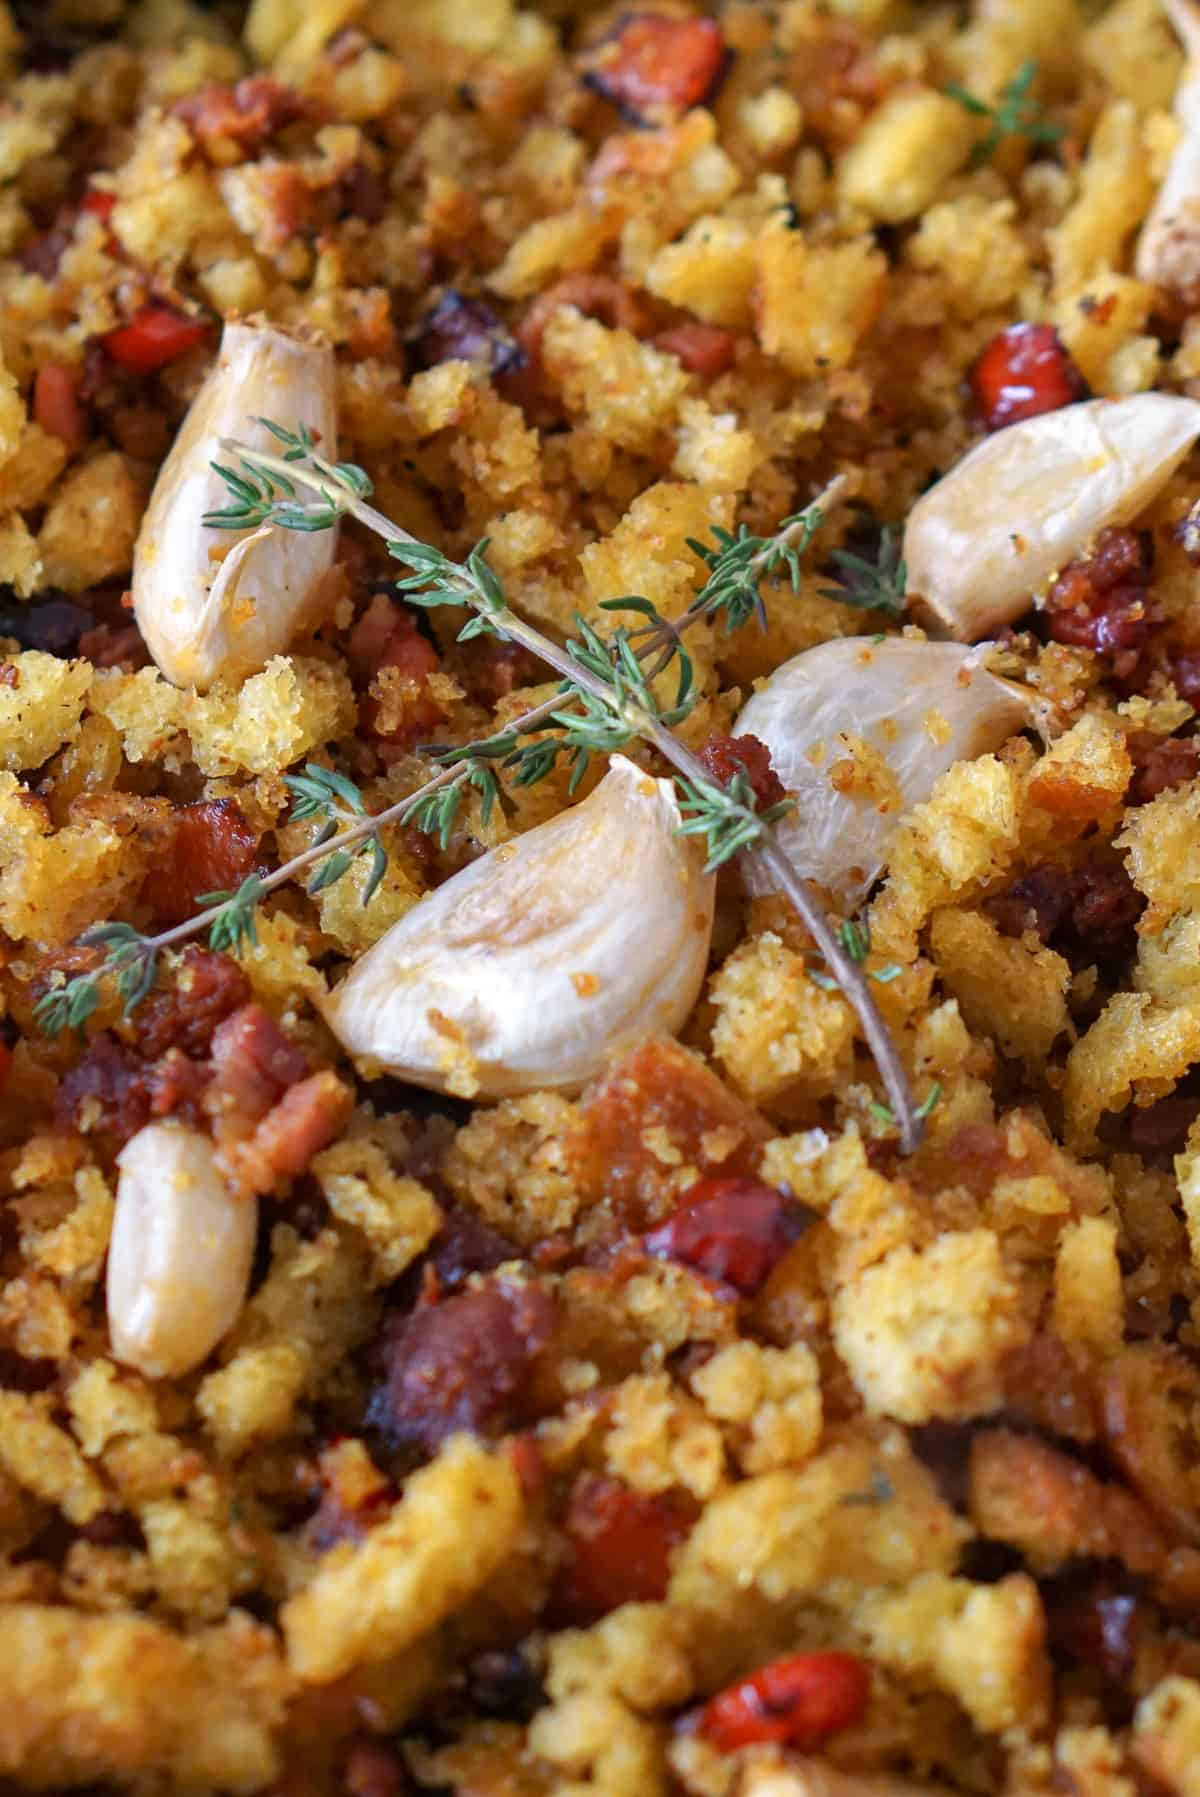 Vertical photo of migas con chorizo, golden fried bread crumbs with chorizo sausage and whole garlic cloves and rosemary on top.